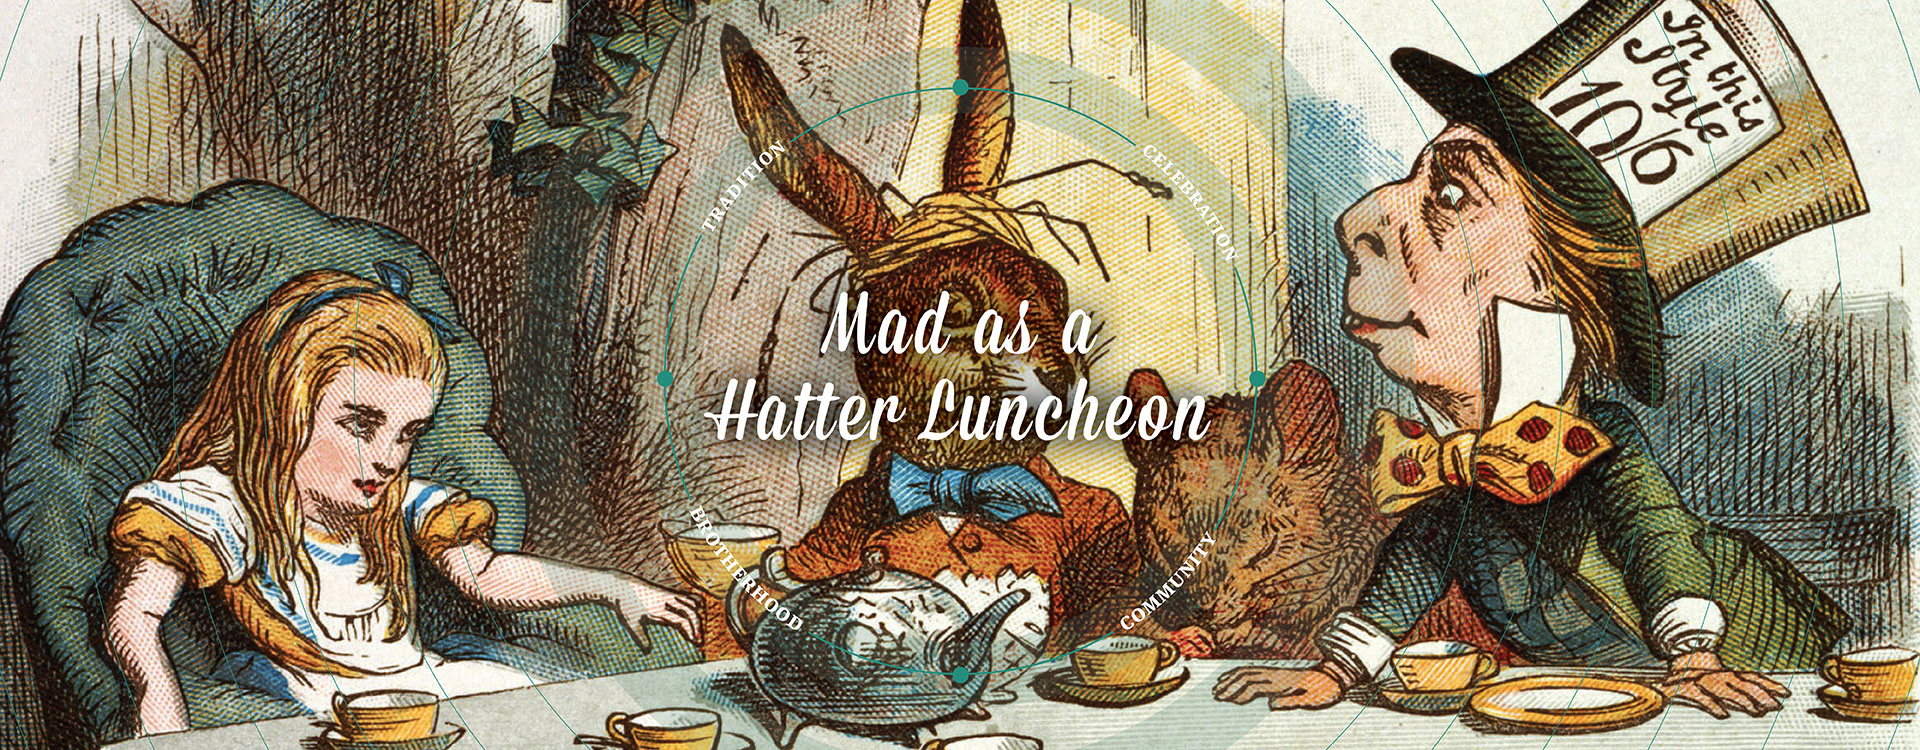 Mad as a Hatter Luncheon